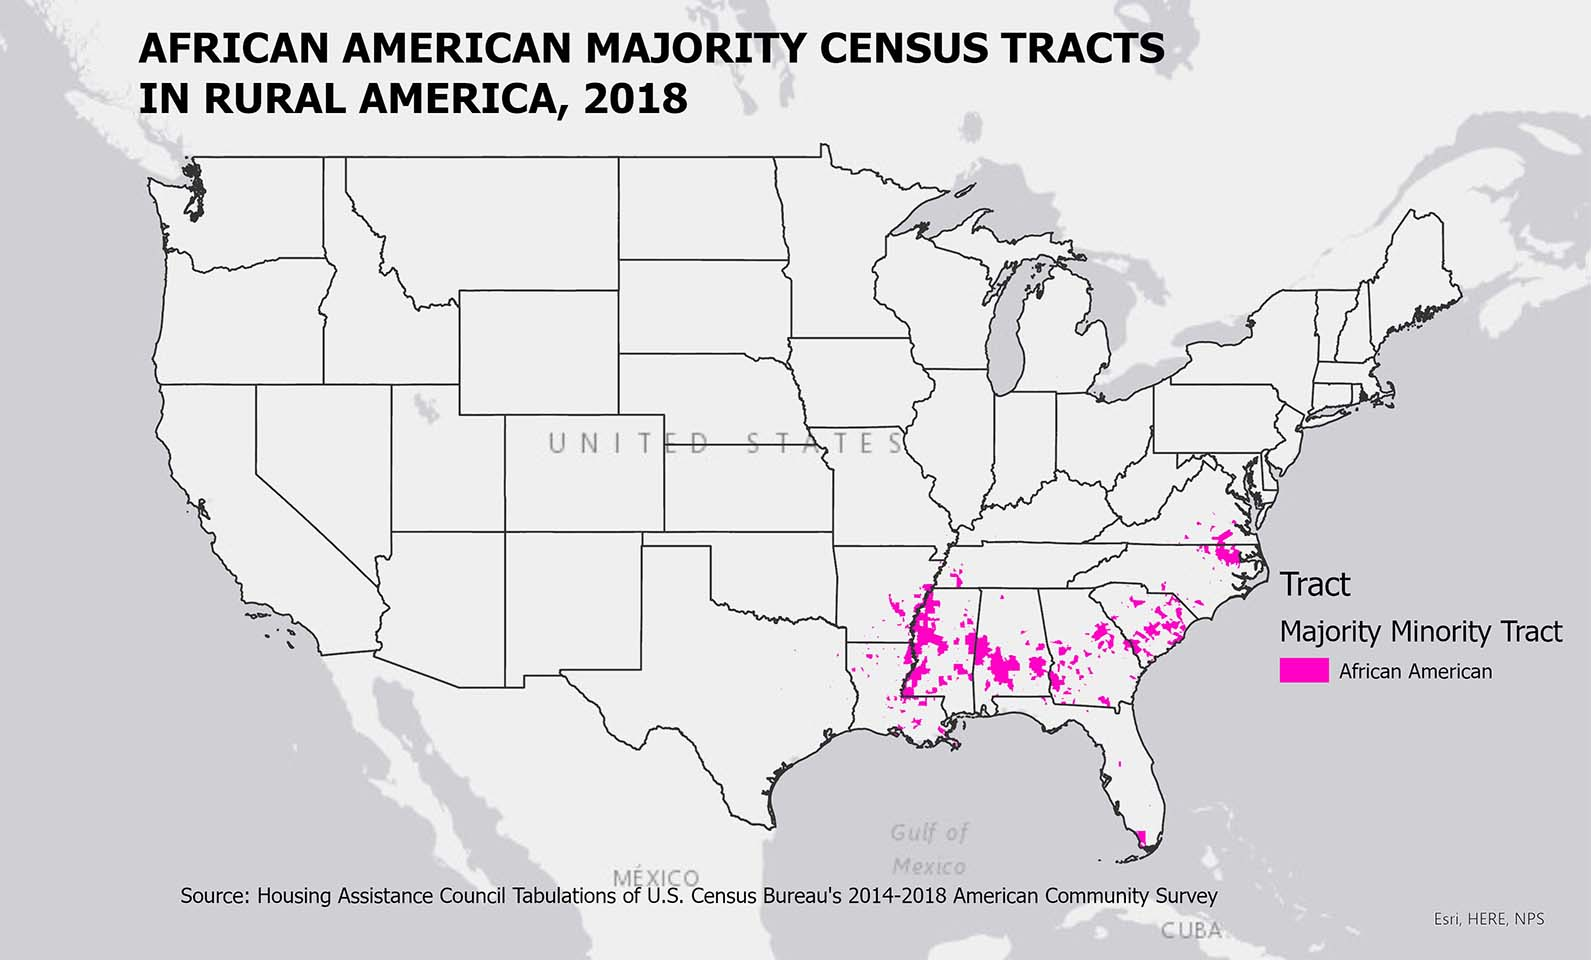 Majority African American Rural Tracts